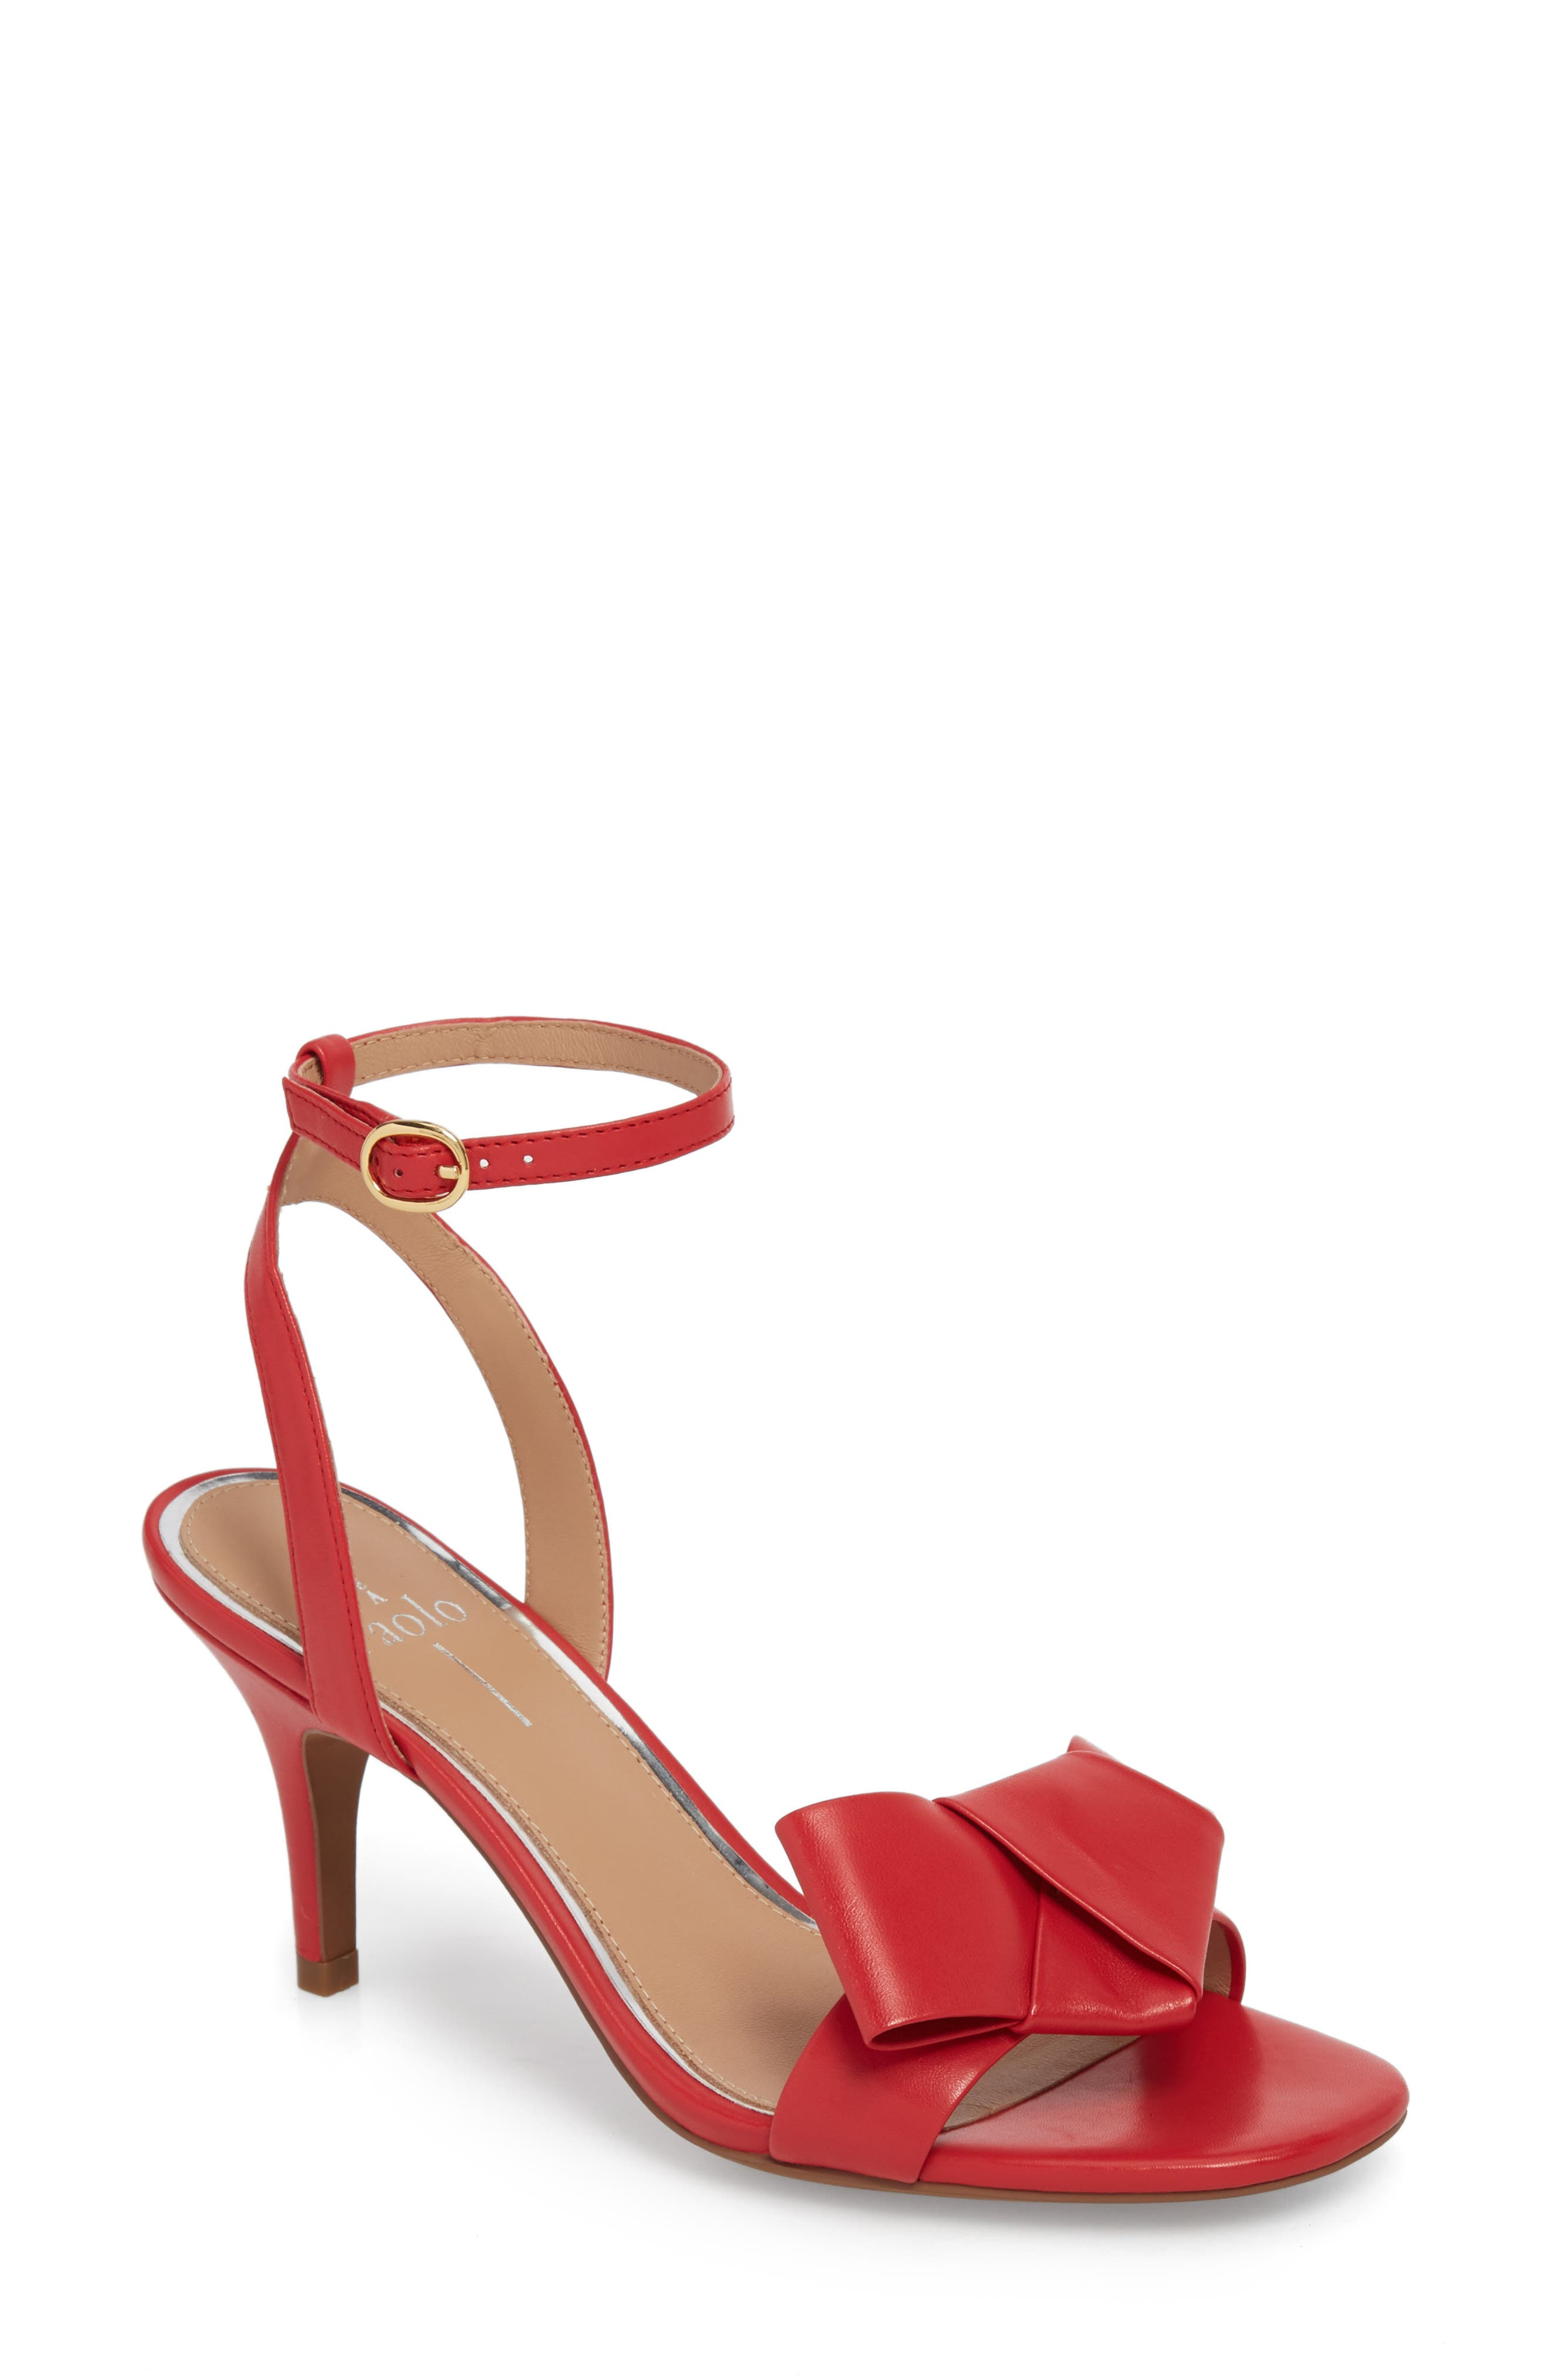 Haven Ankle Strap Sandal,                         Main,                         color, Red Leather